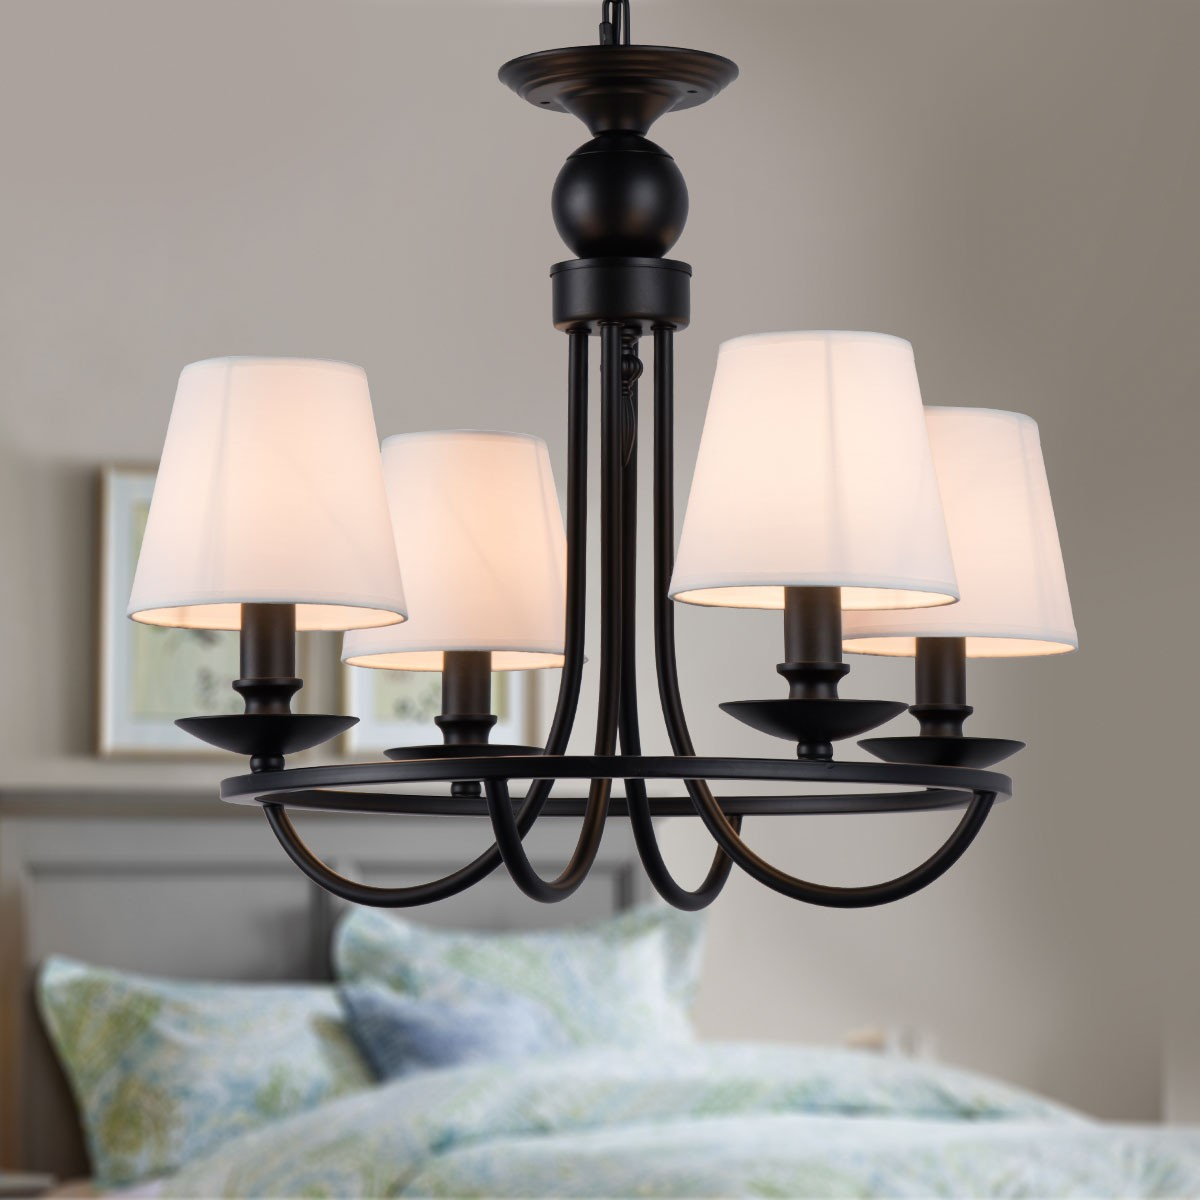 4 Light Black Wrought Iron Chandelier With Cloth Shades